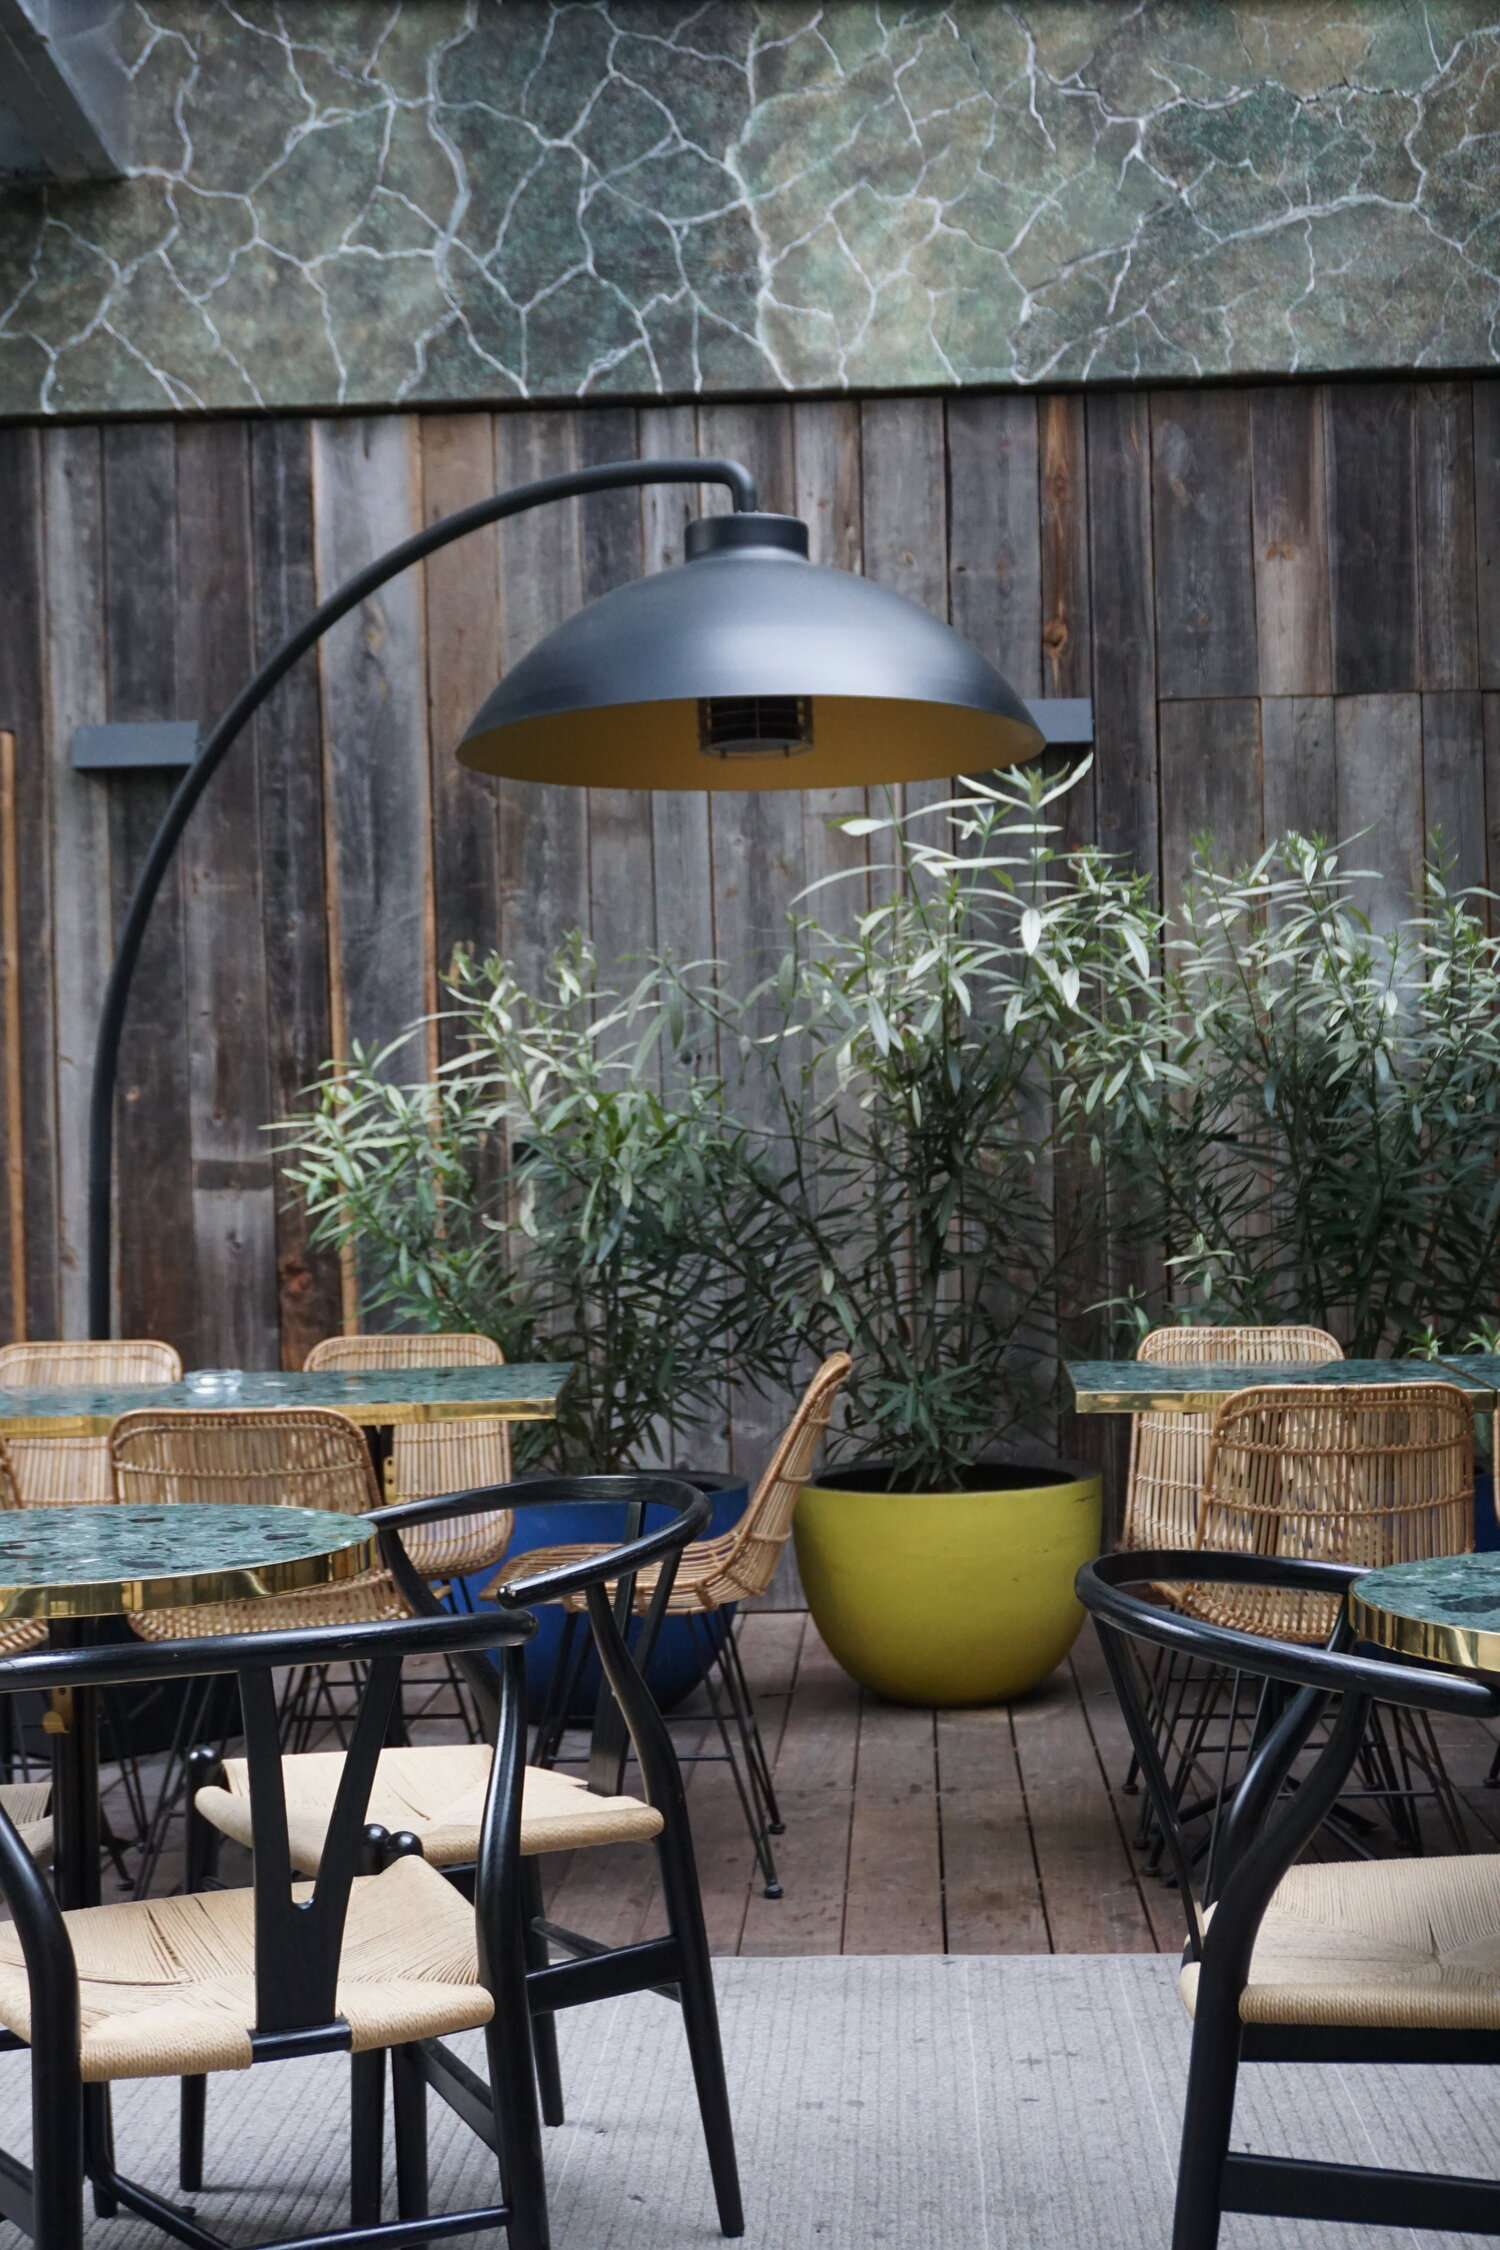 outdoor seating on a wooden deck with plants at Le Hotel Parister in Paris